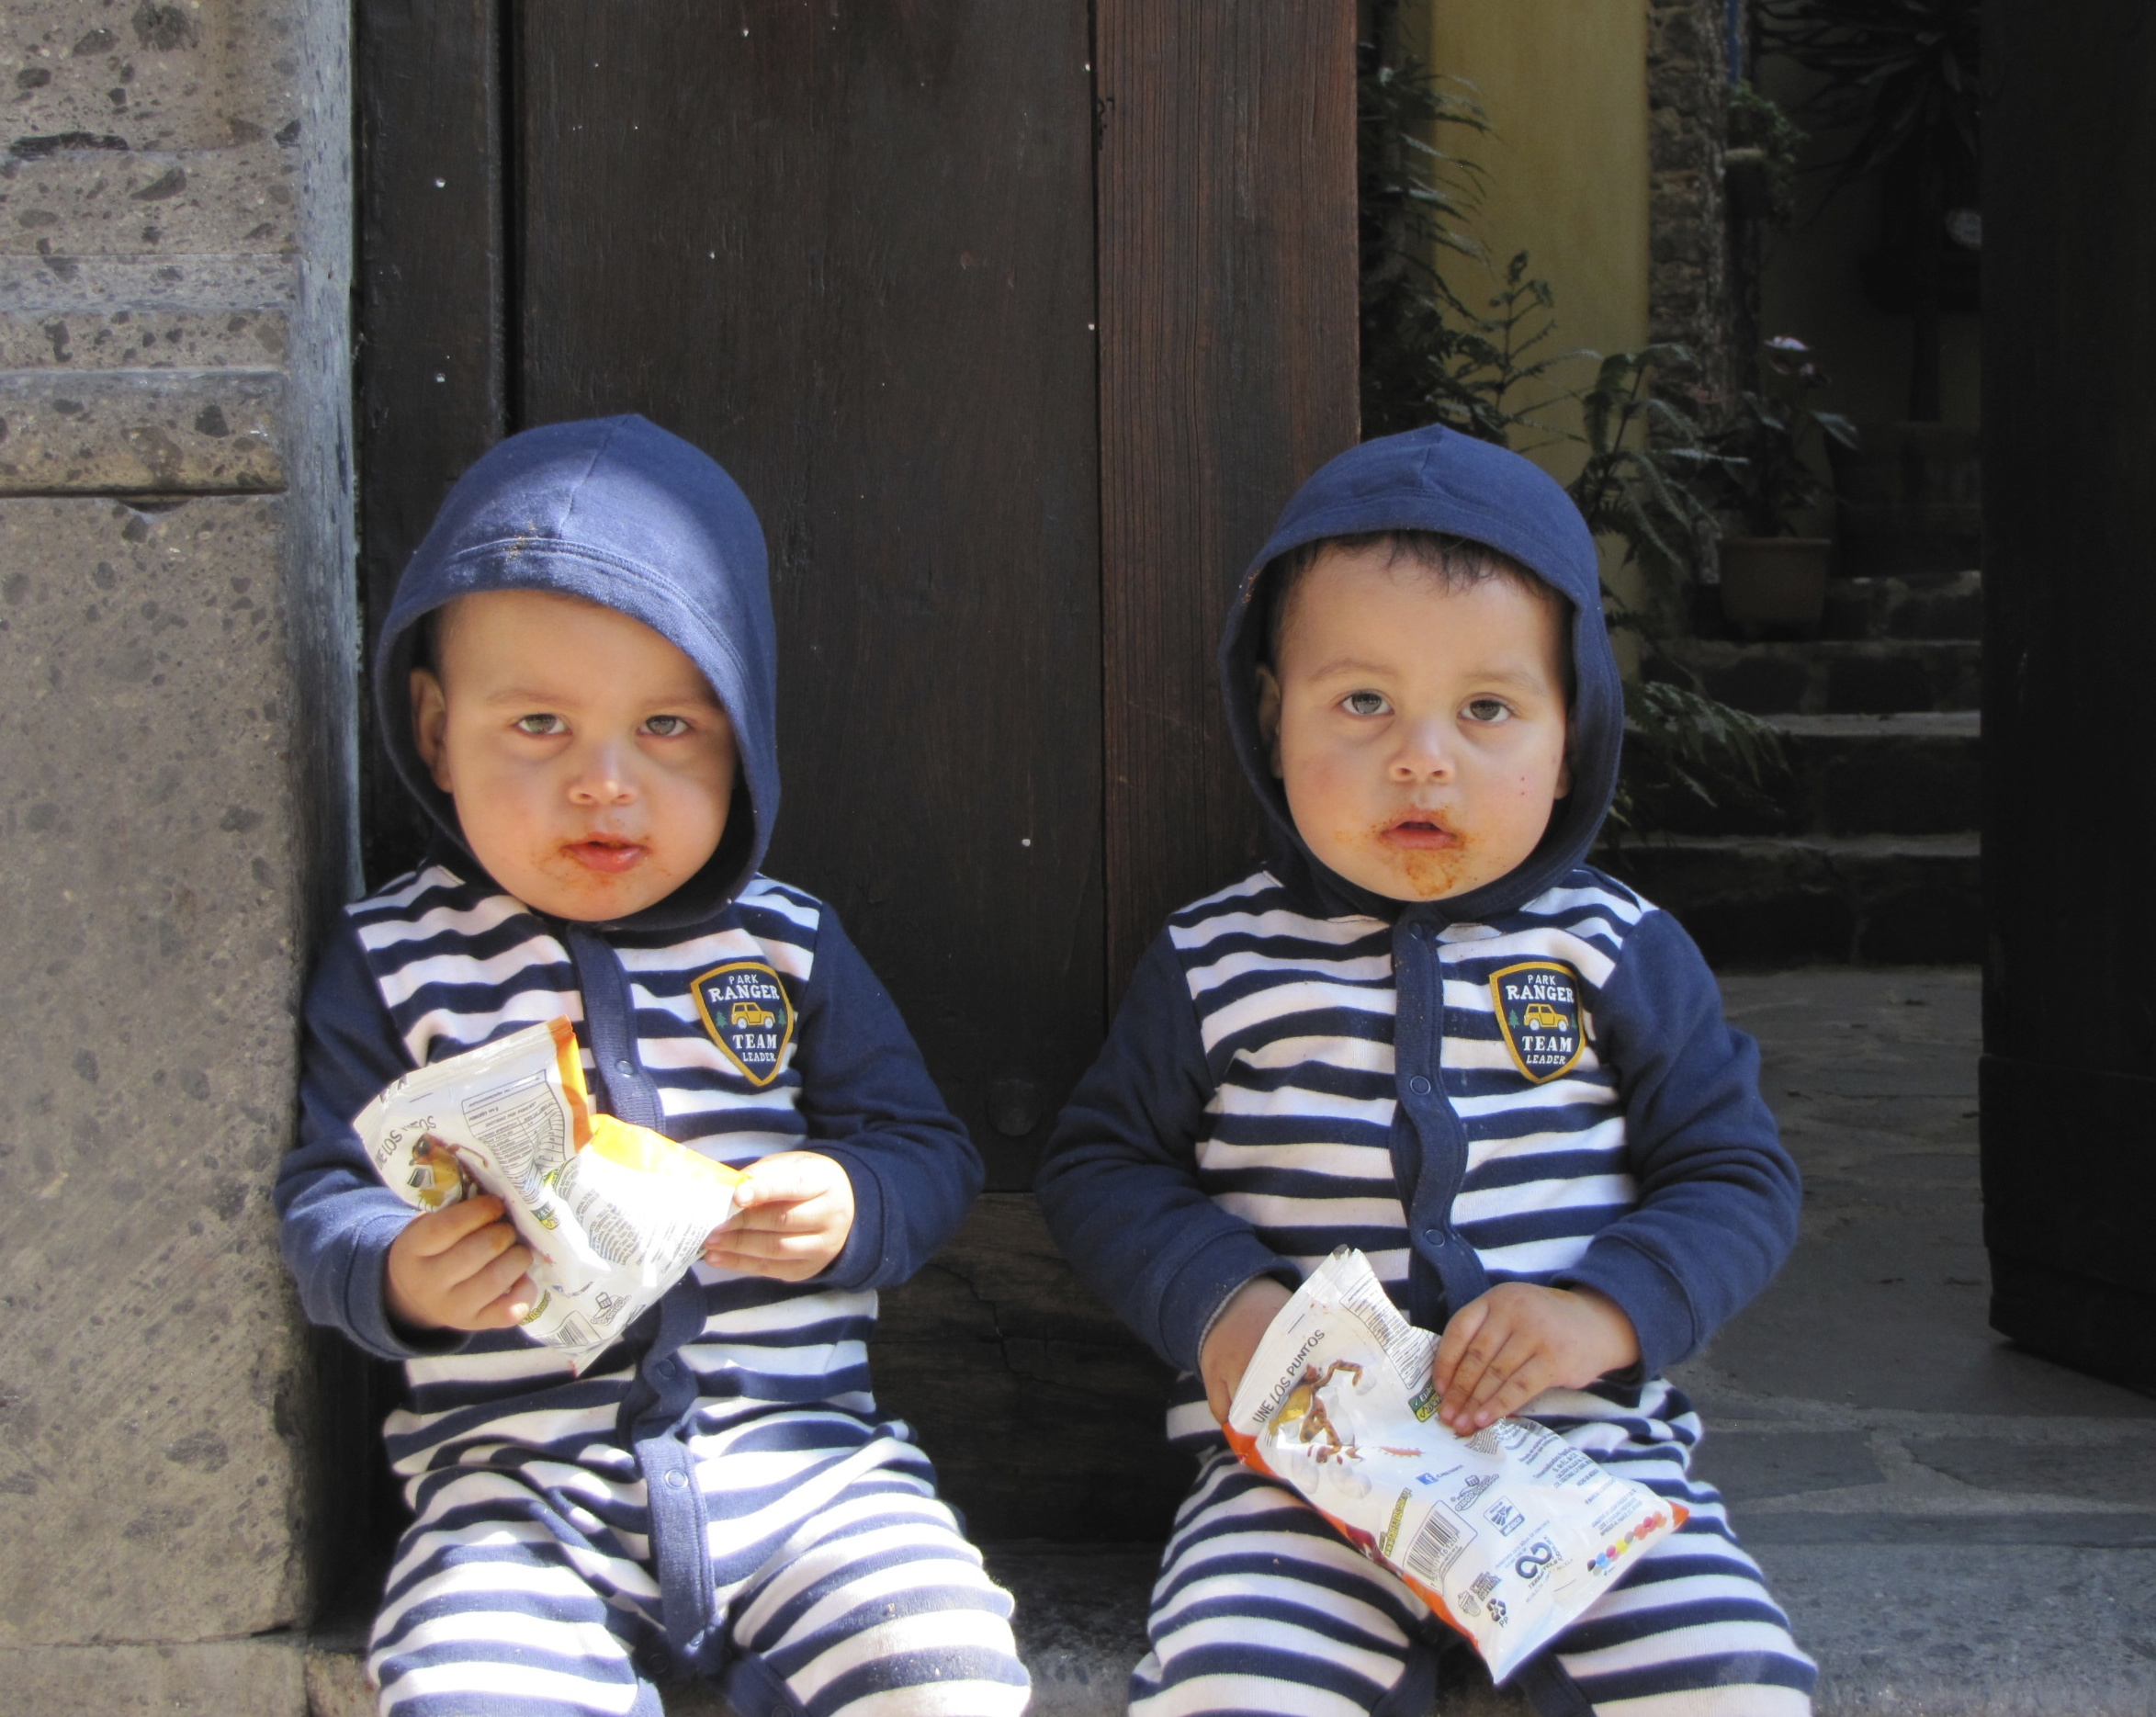 Twins outside our door! So cute even though the chips were, well... - Version 2.JPG